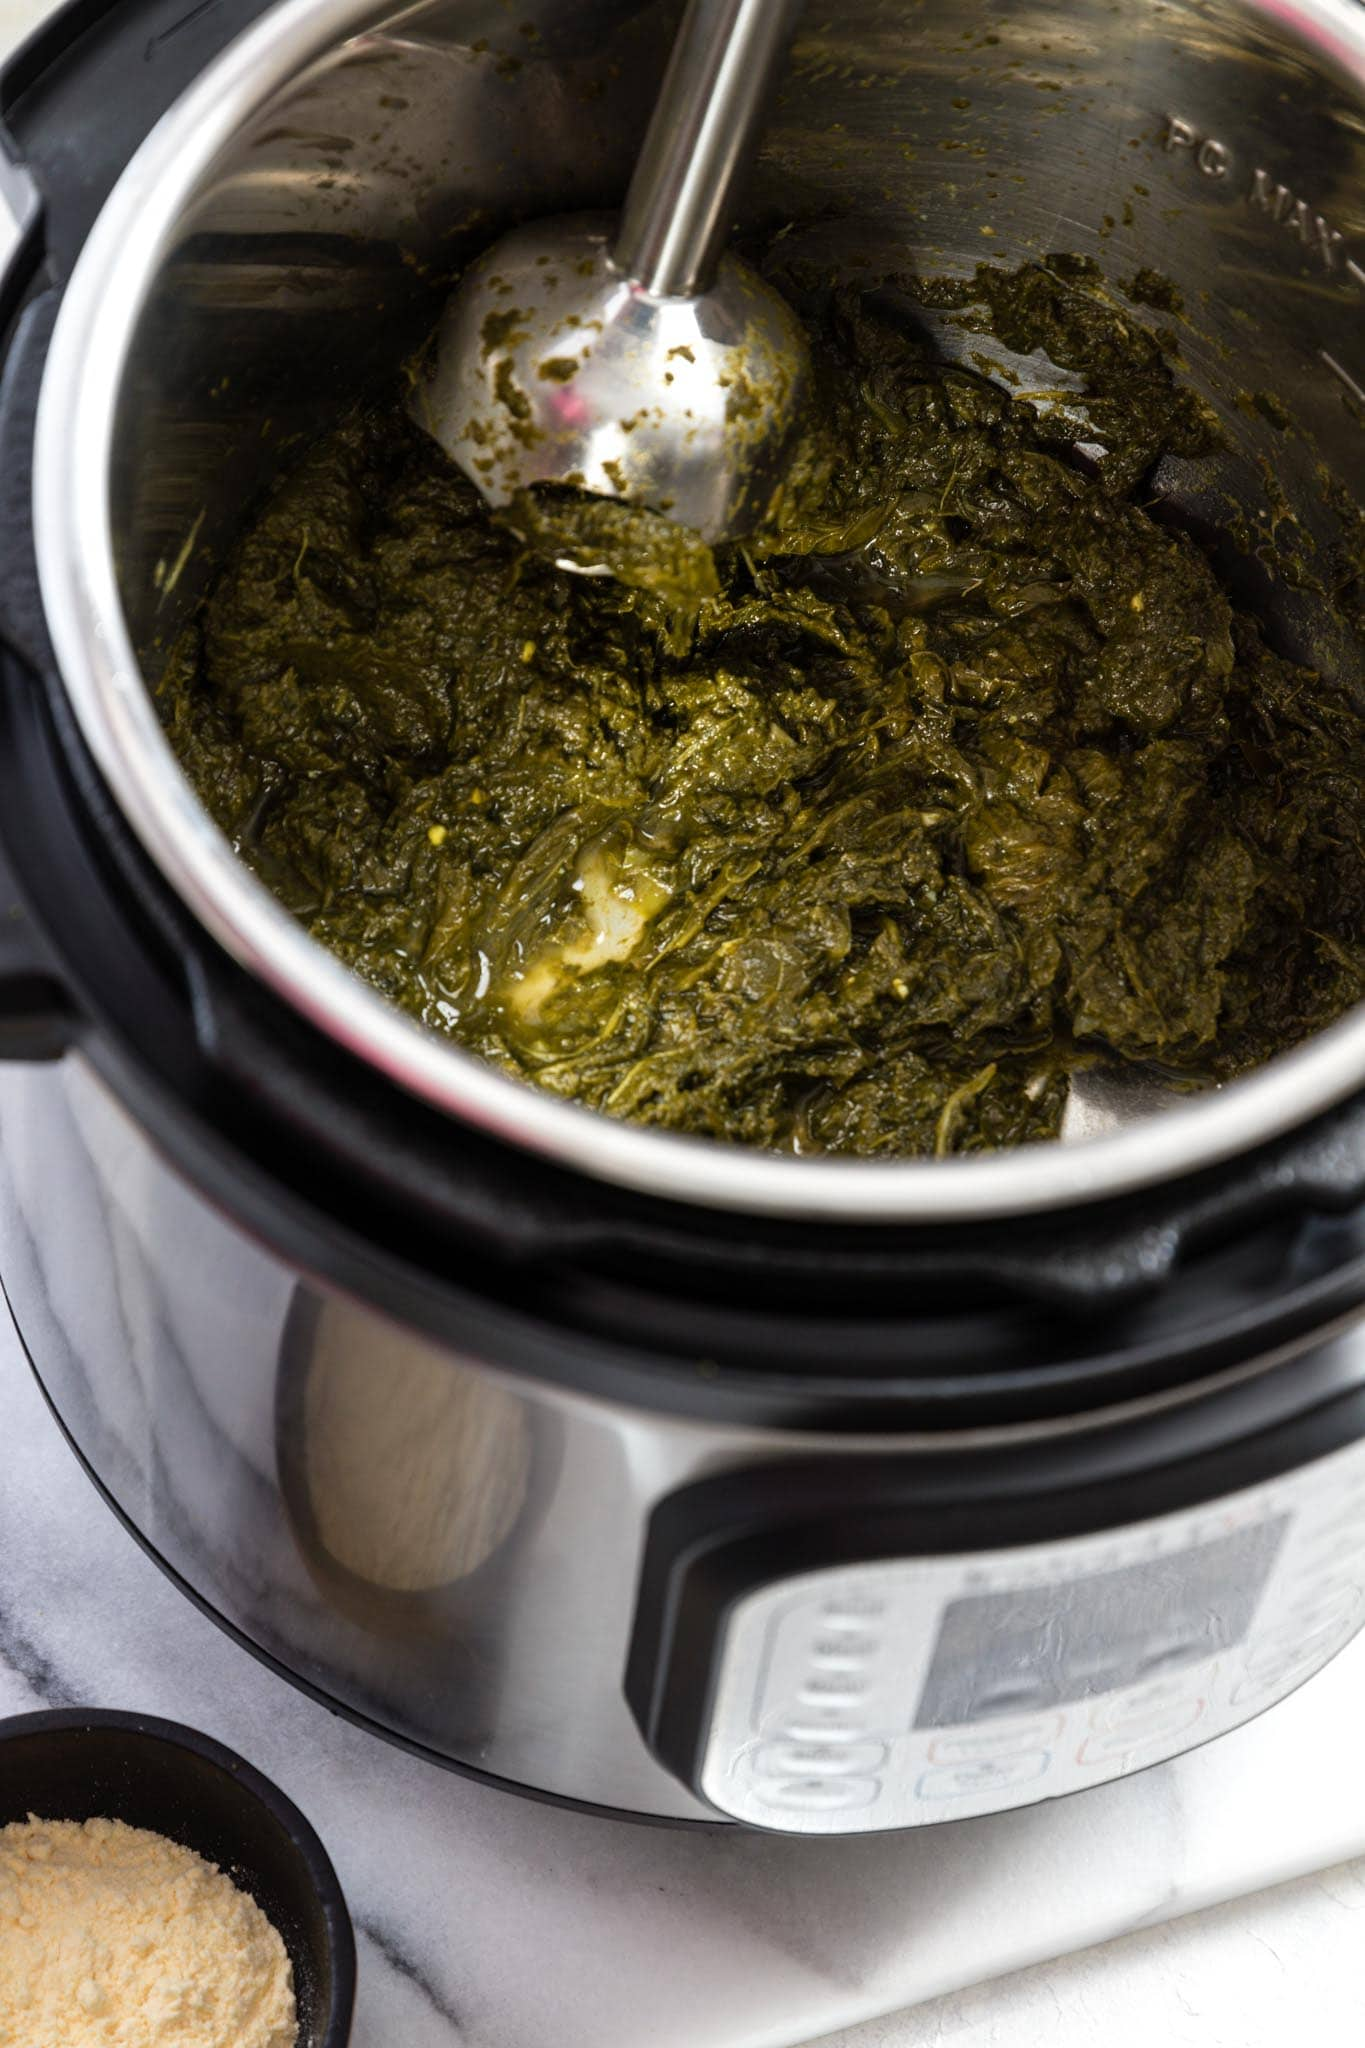 Blending greens for Instant Pot Sarson Ka Saag with a hand blender